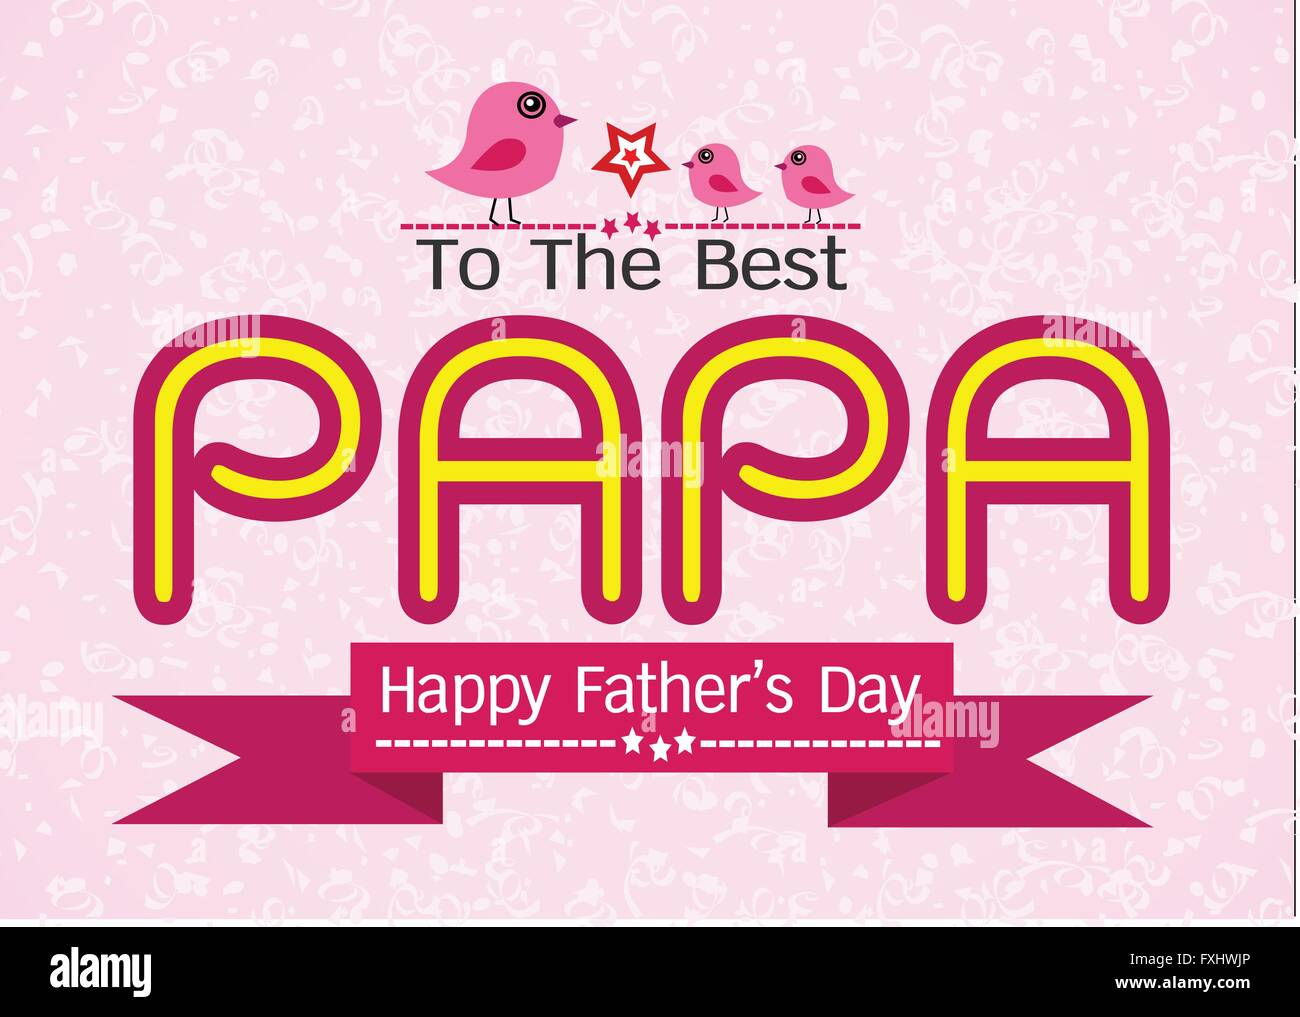 Happy Fathers Day Card Love Papa Or Dad Stock Vector Art